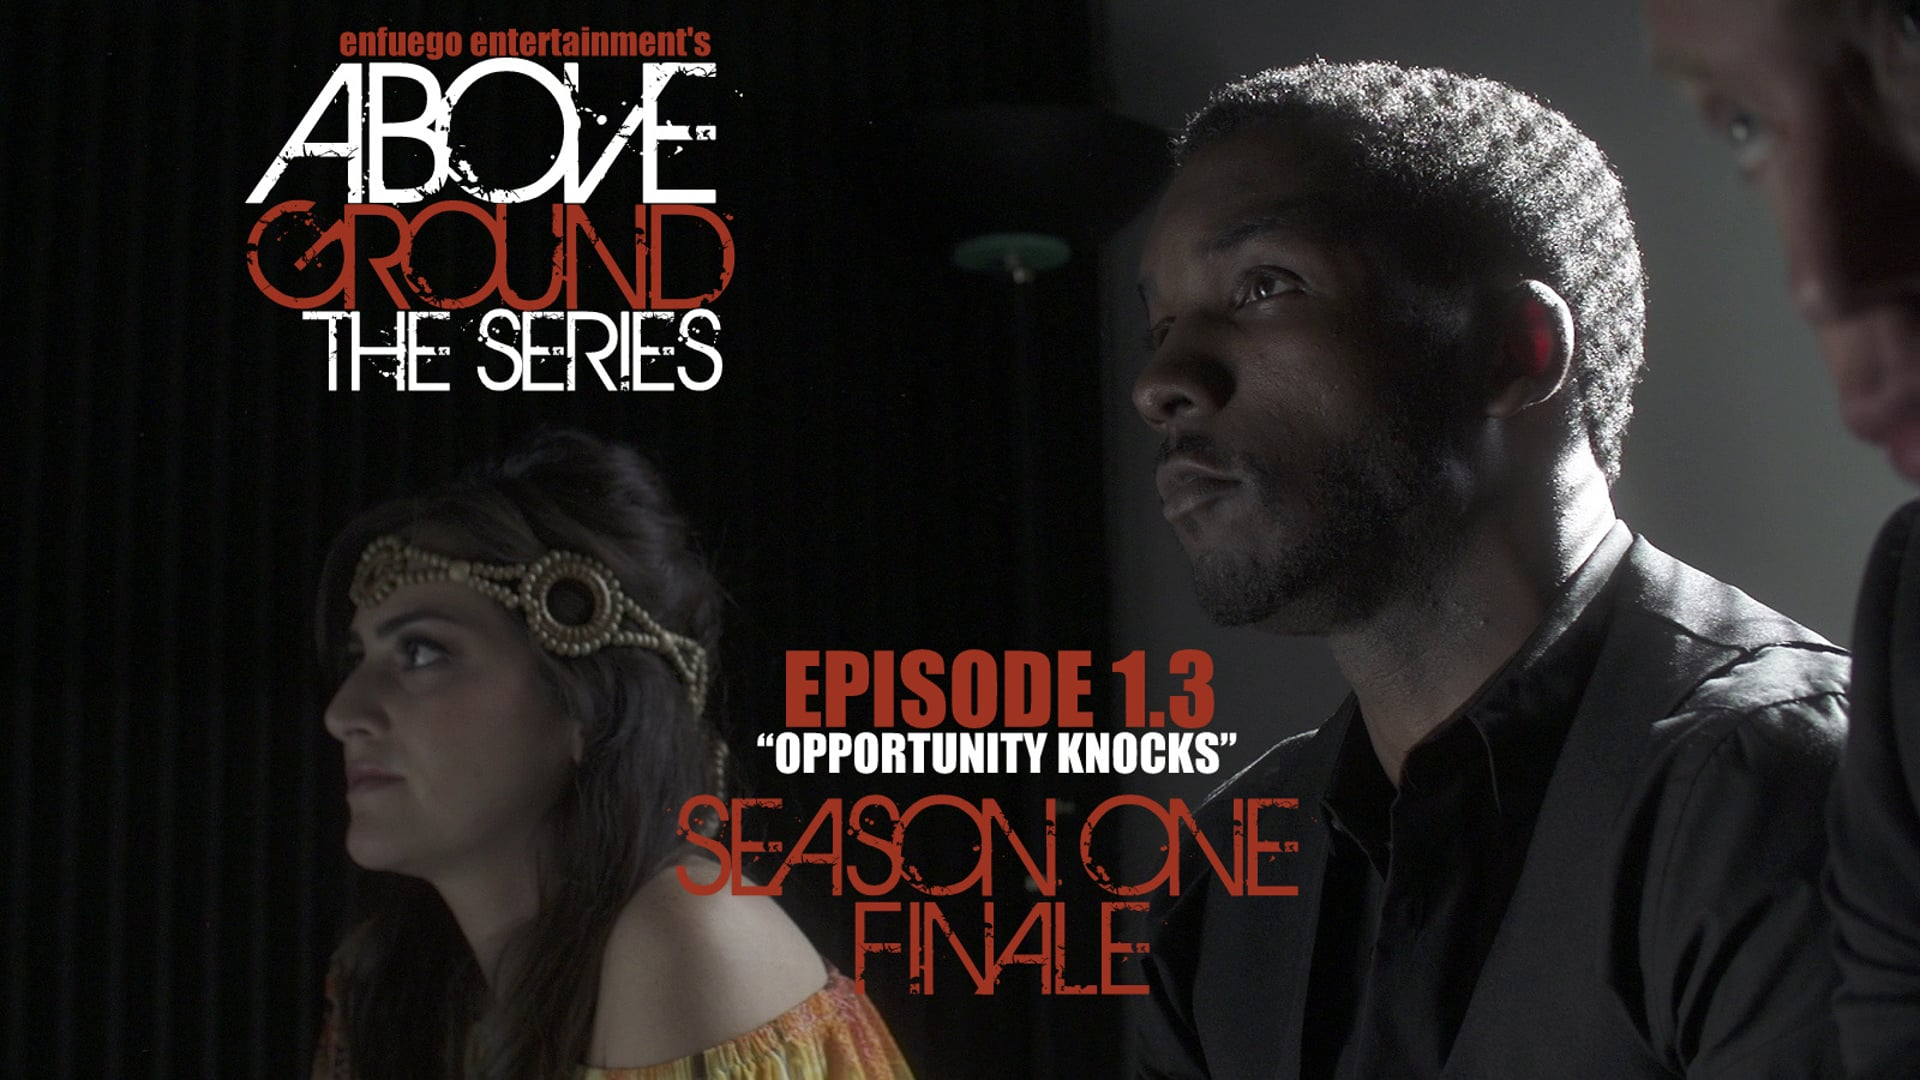 """AboveGround The Series - Ep. 1.3 """"Opportunity Knocks"""" - Season One Finale"""